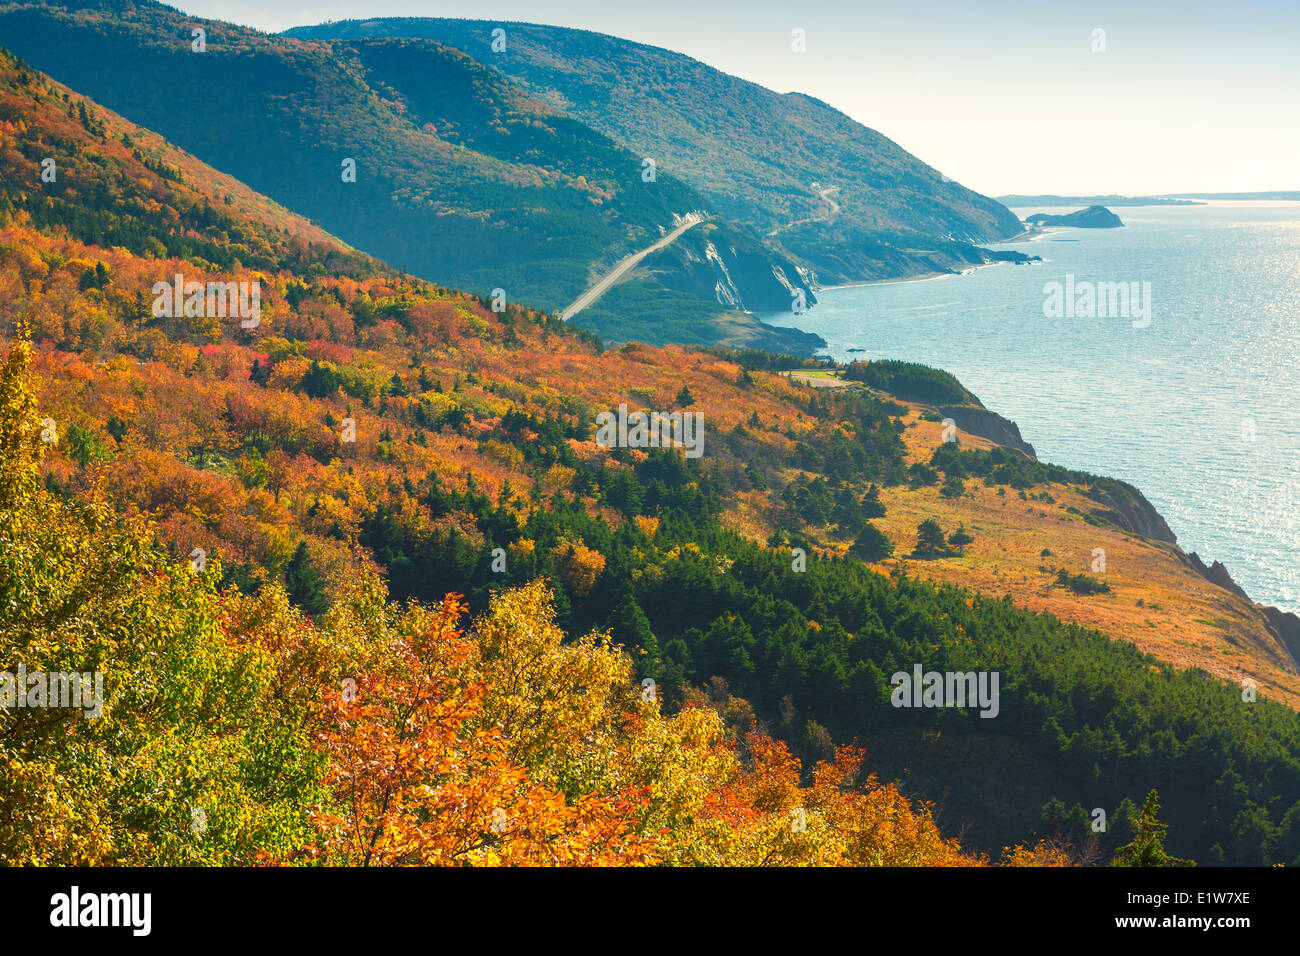 Blick auf Kap Rouge, Cape Breton Highlands National Park, Cape Breton, Nova Scotia, Kanada Stockbild